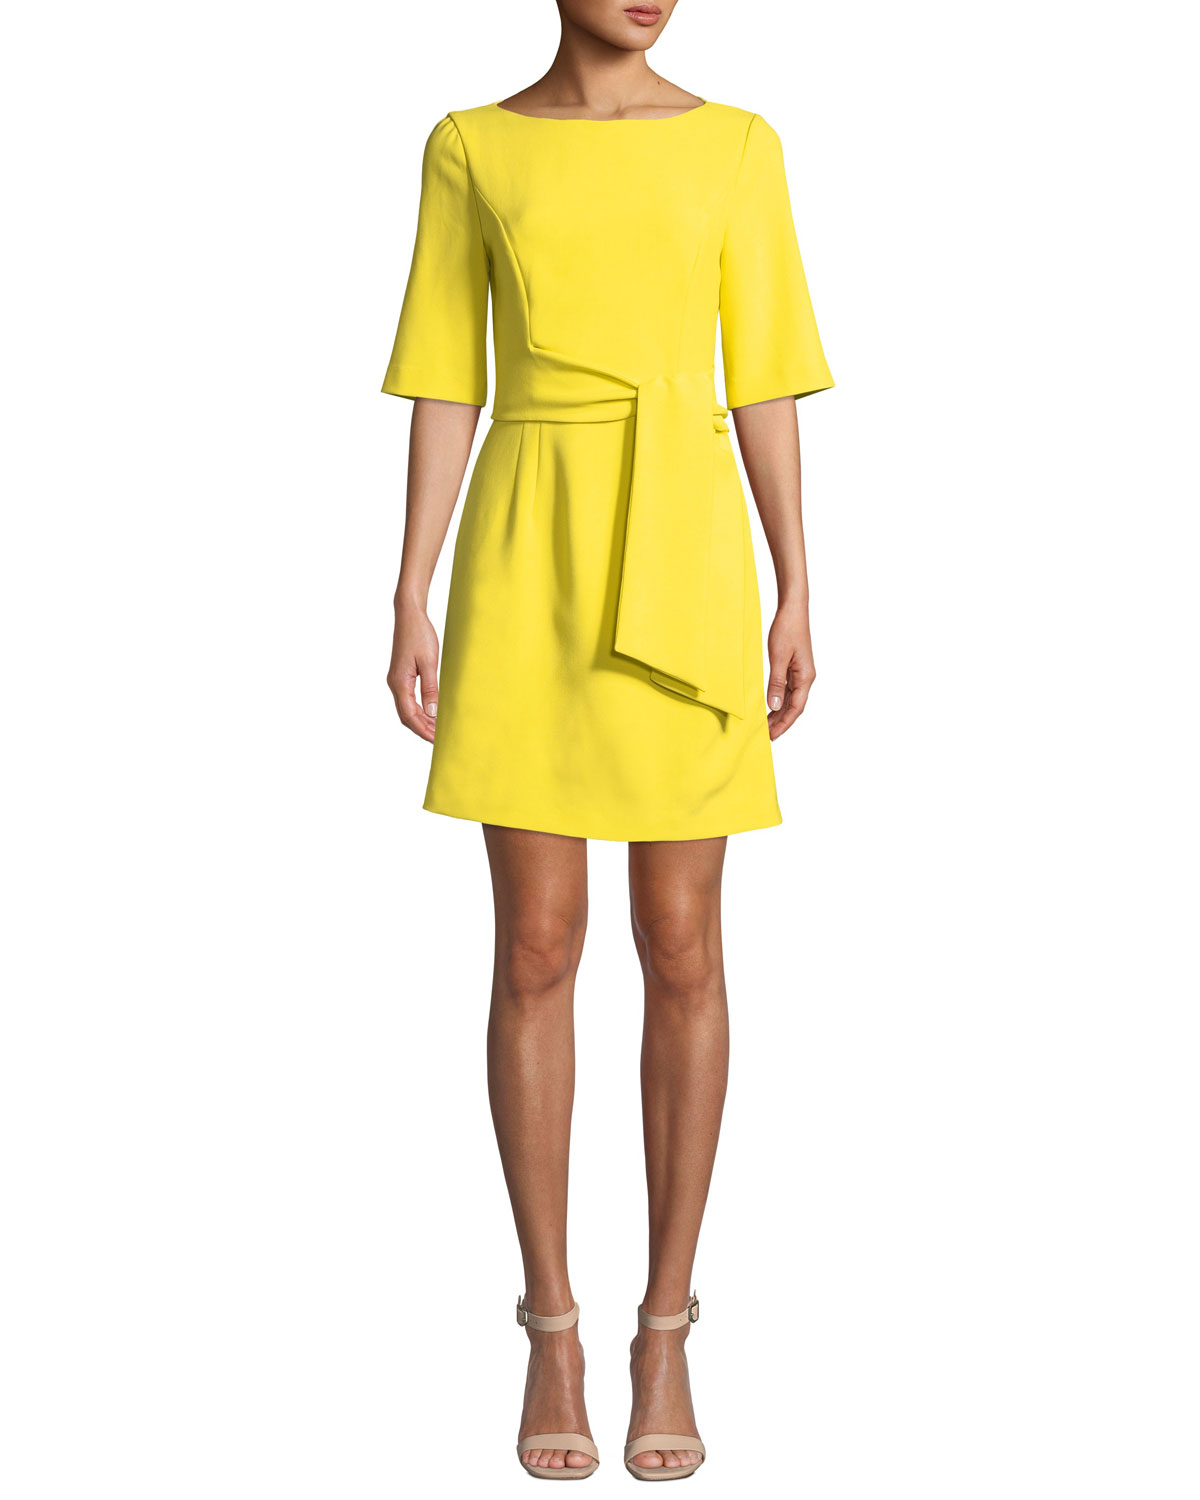 Virgil Boat-Neck Dress With Wrap Belt in Yellow